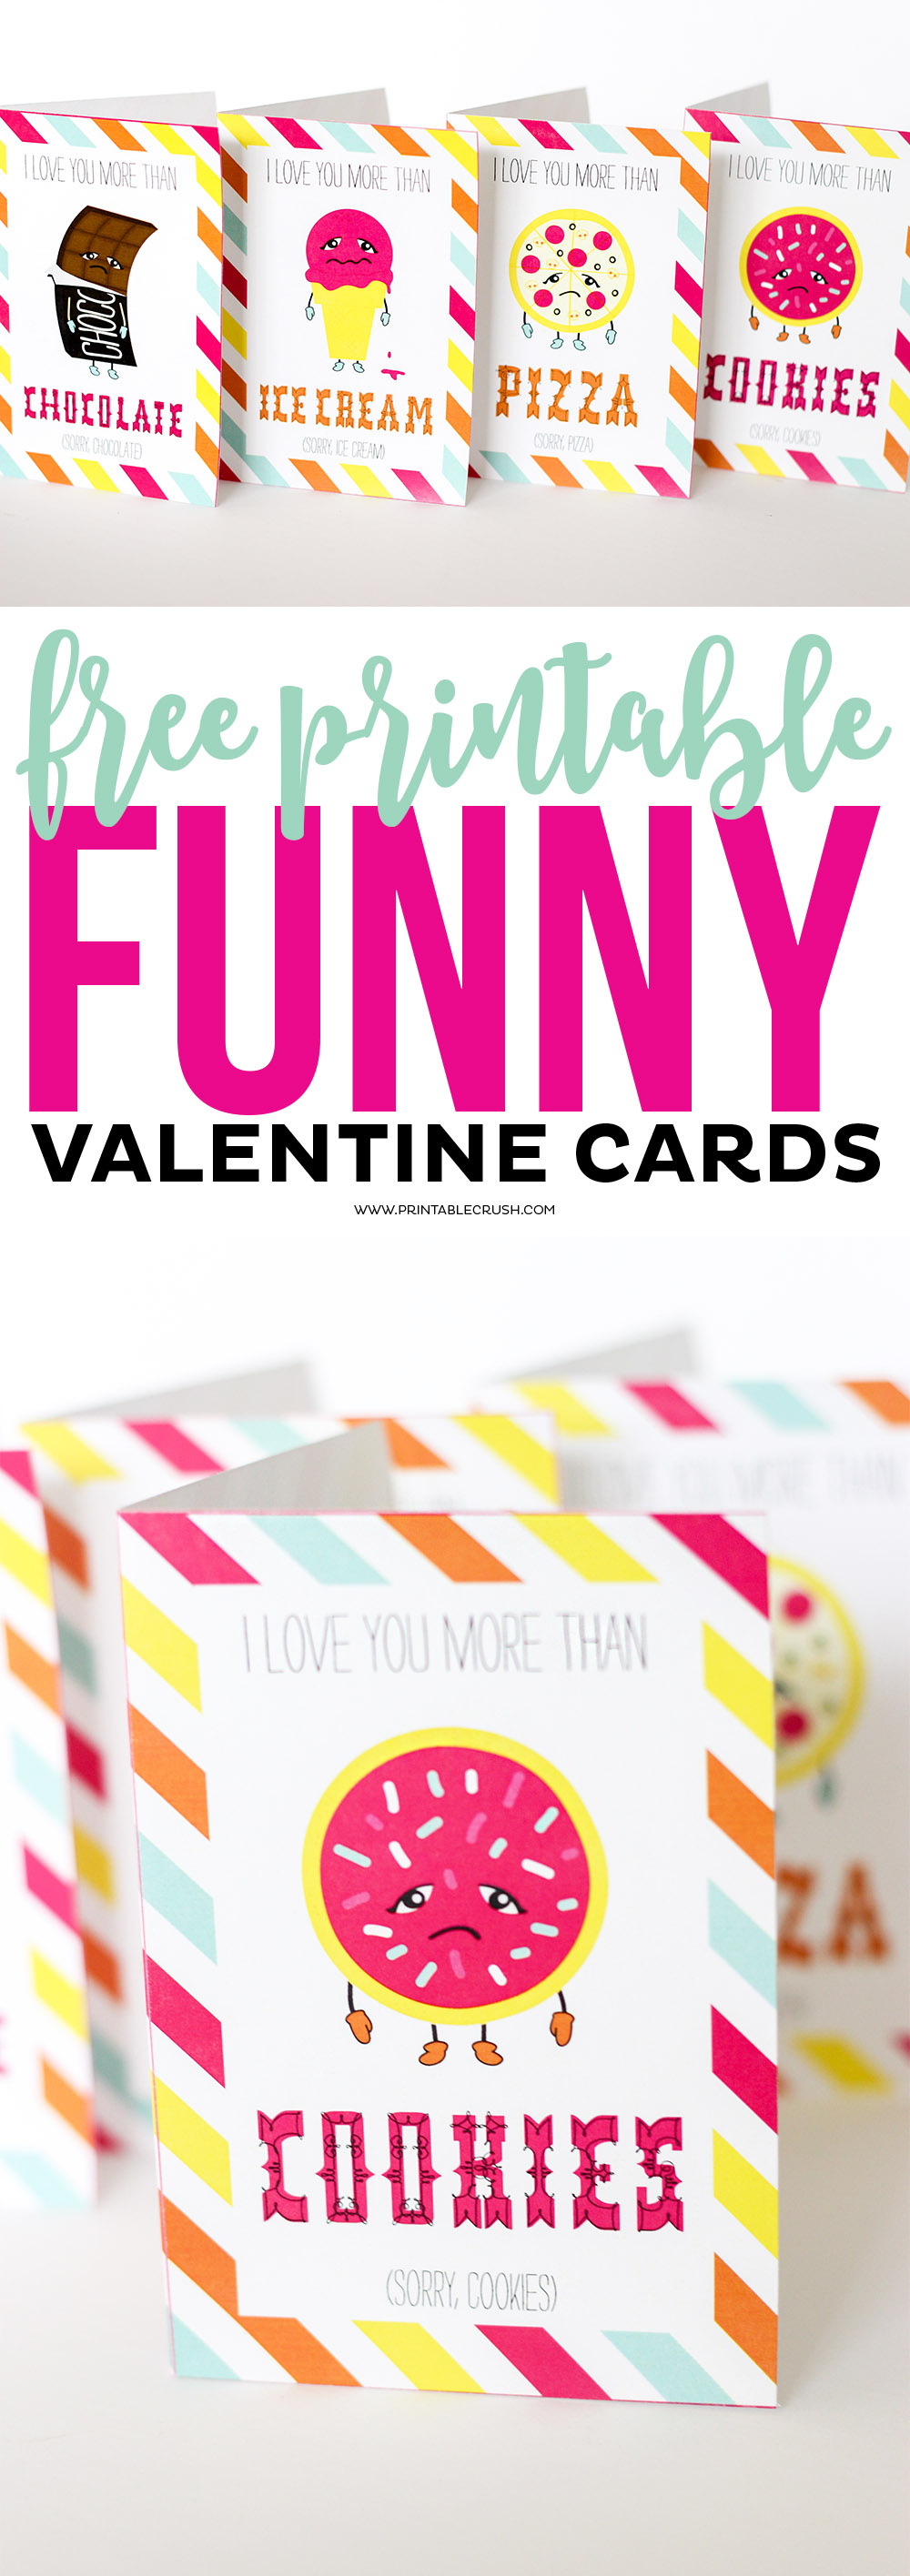 FREE Printable Funny Valentine Cards Printable Crush – Valentine Cards Funny